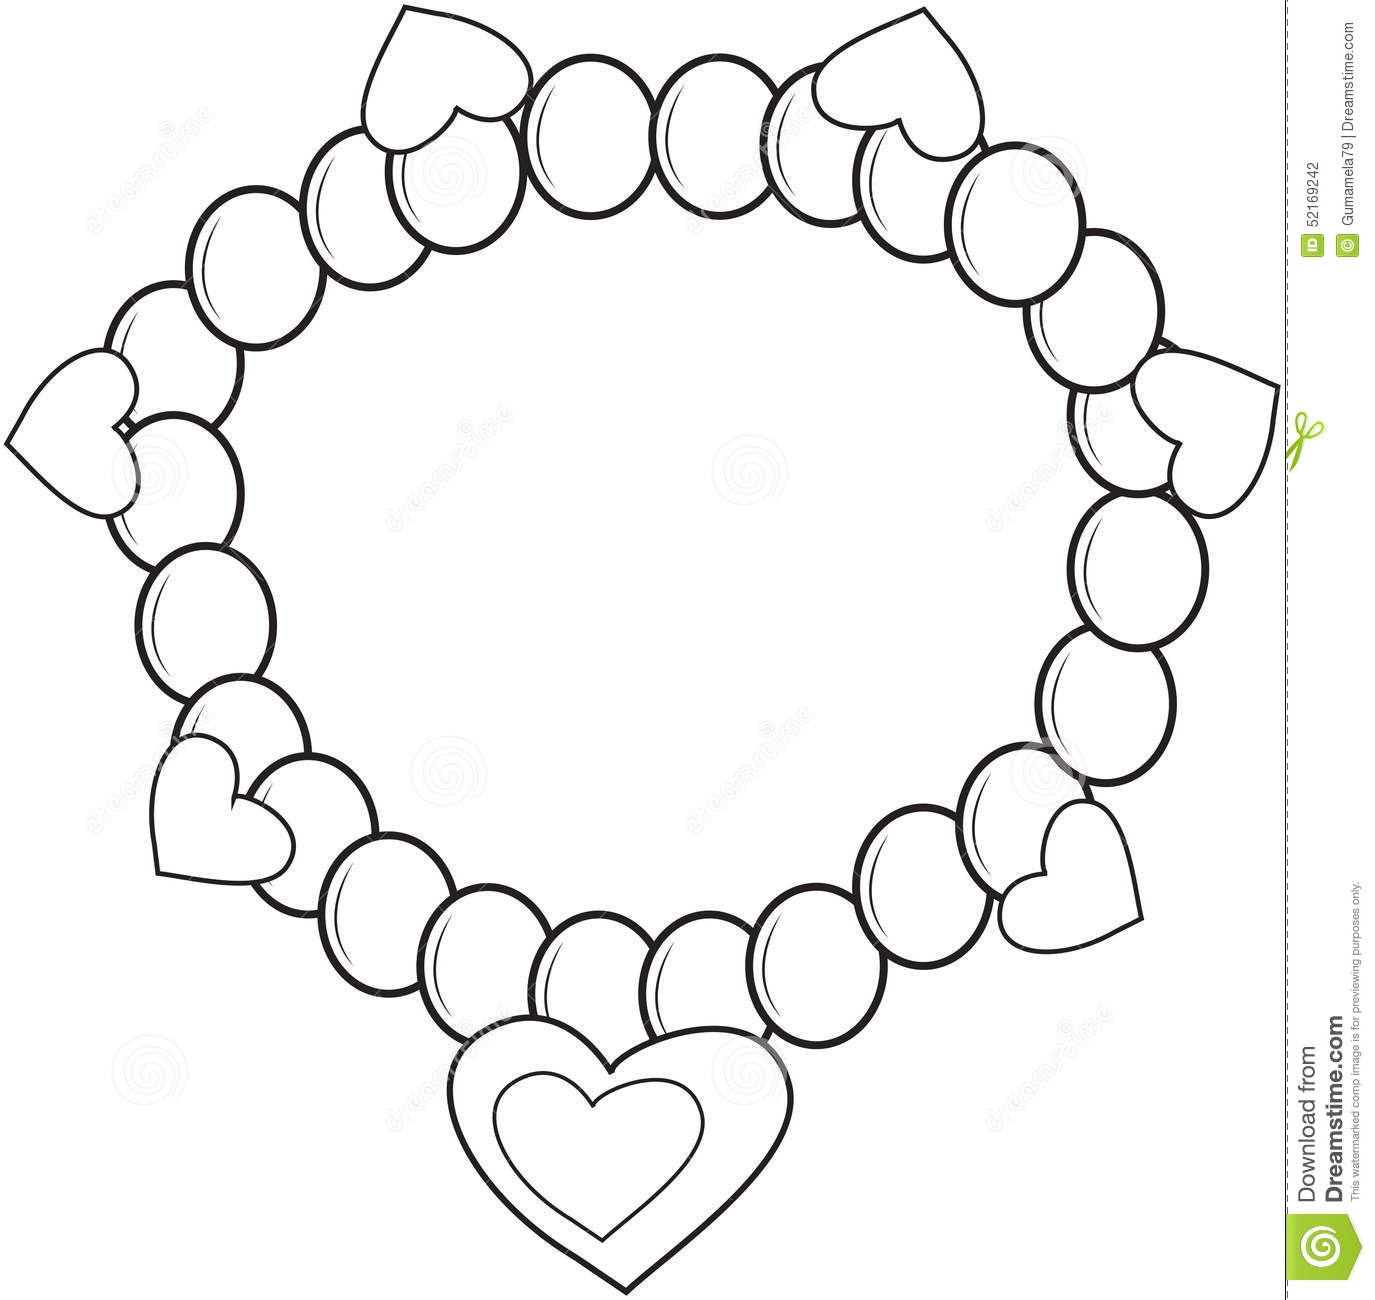 Bracelet Coloring Page Stock Illustration